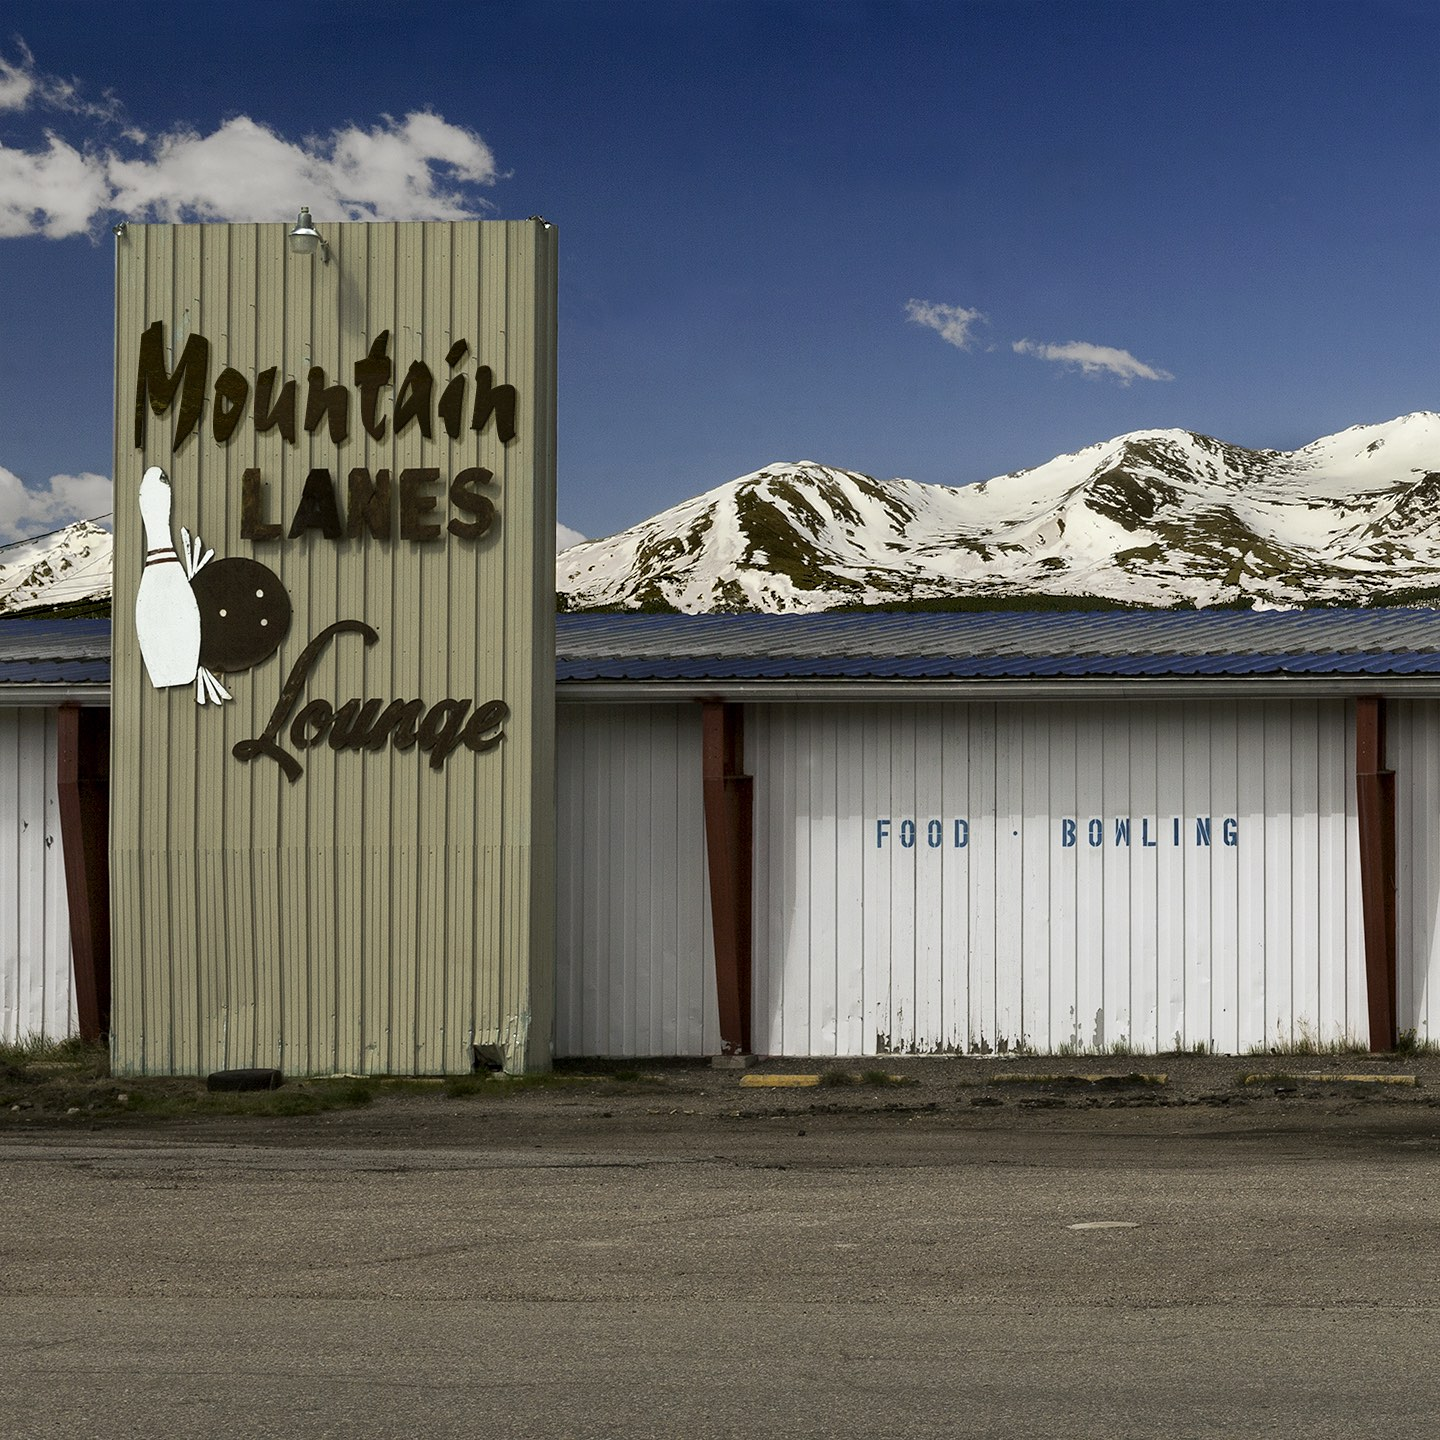 Mountain Lanes Lounge, Colorado, 2017 from the 'Indifferent West' Series